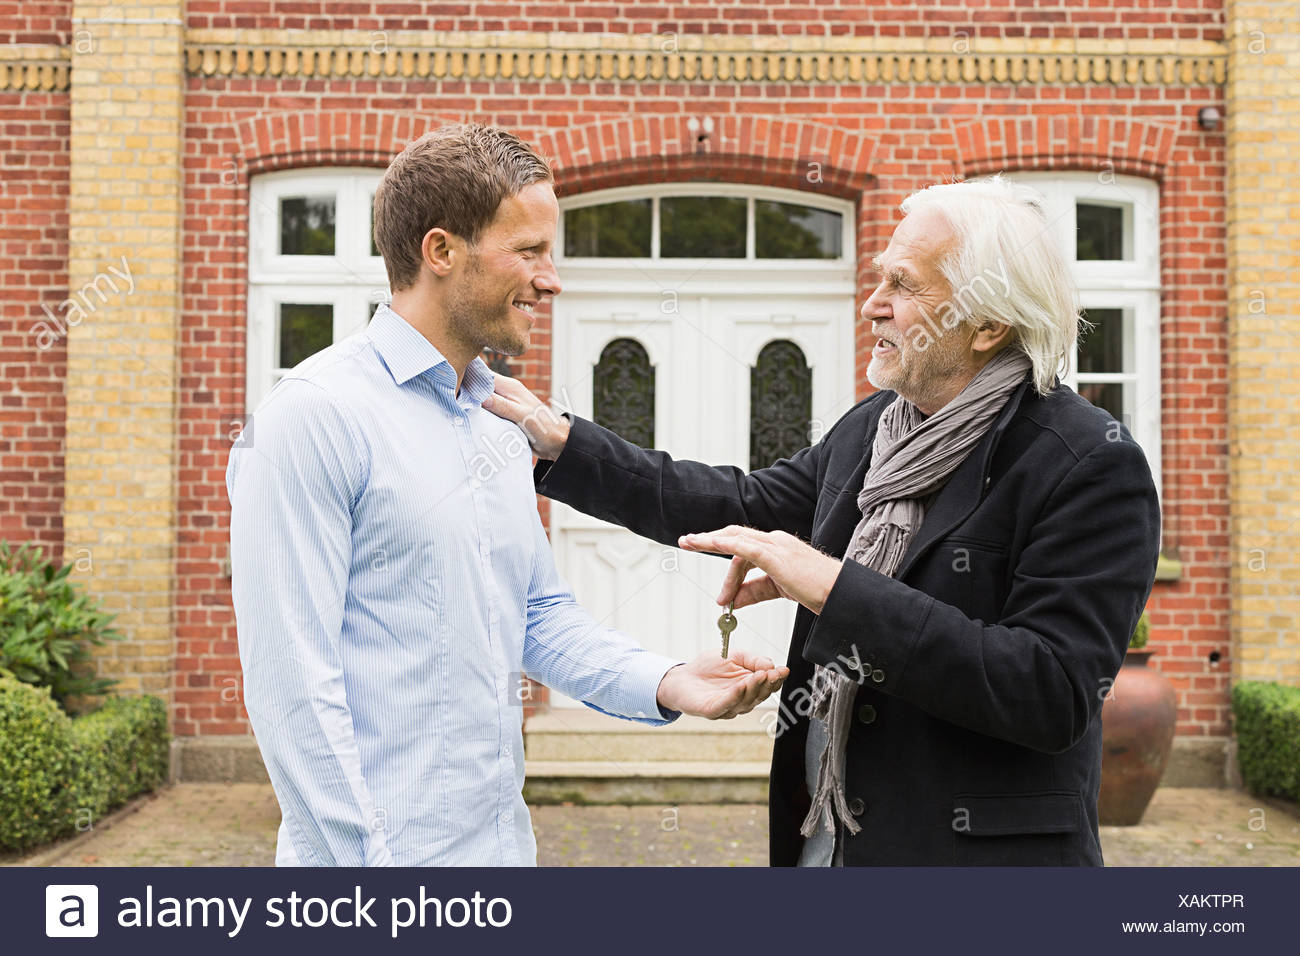 Father giving son key outside house - Stock Image